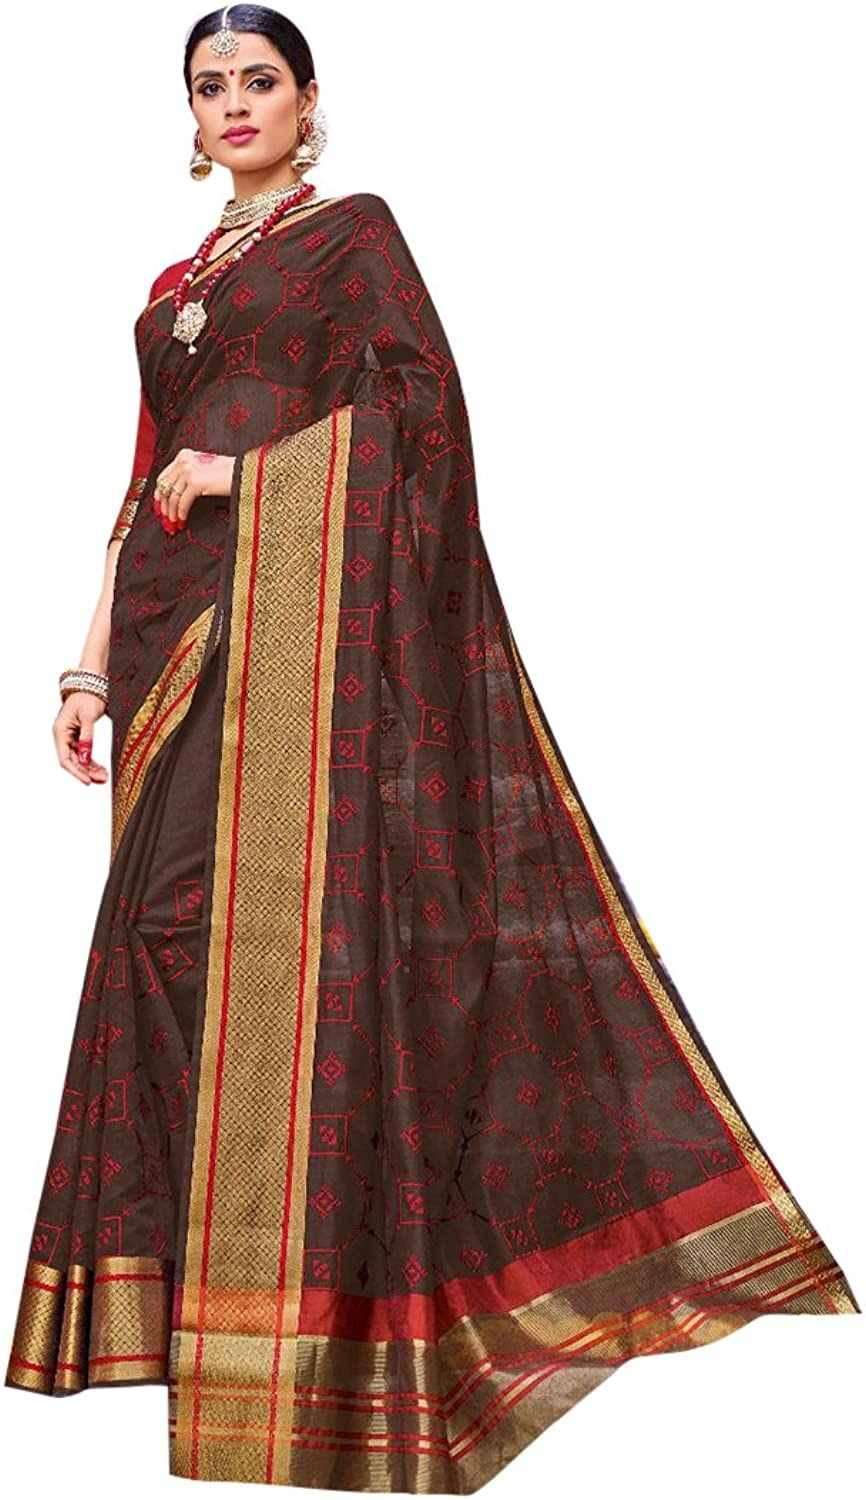 Bollywood Collection Of Silk Printed Saree Wedding Sari Blouse Formal Ethnic Designer Women muslim Indian Eid 2822